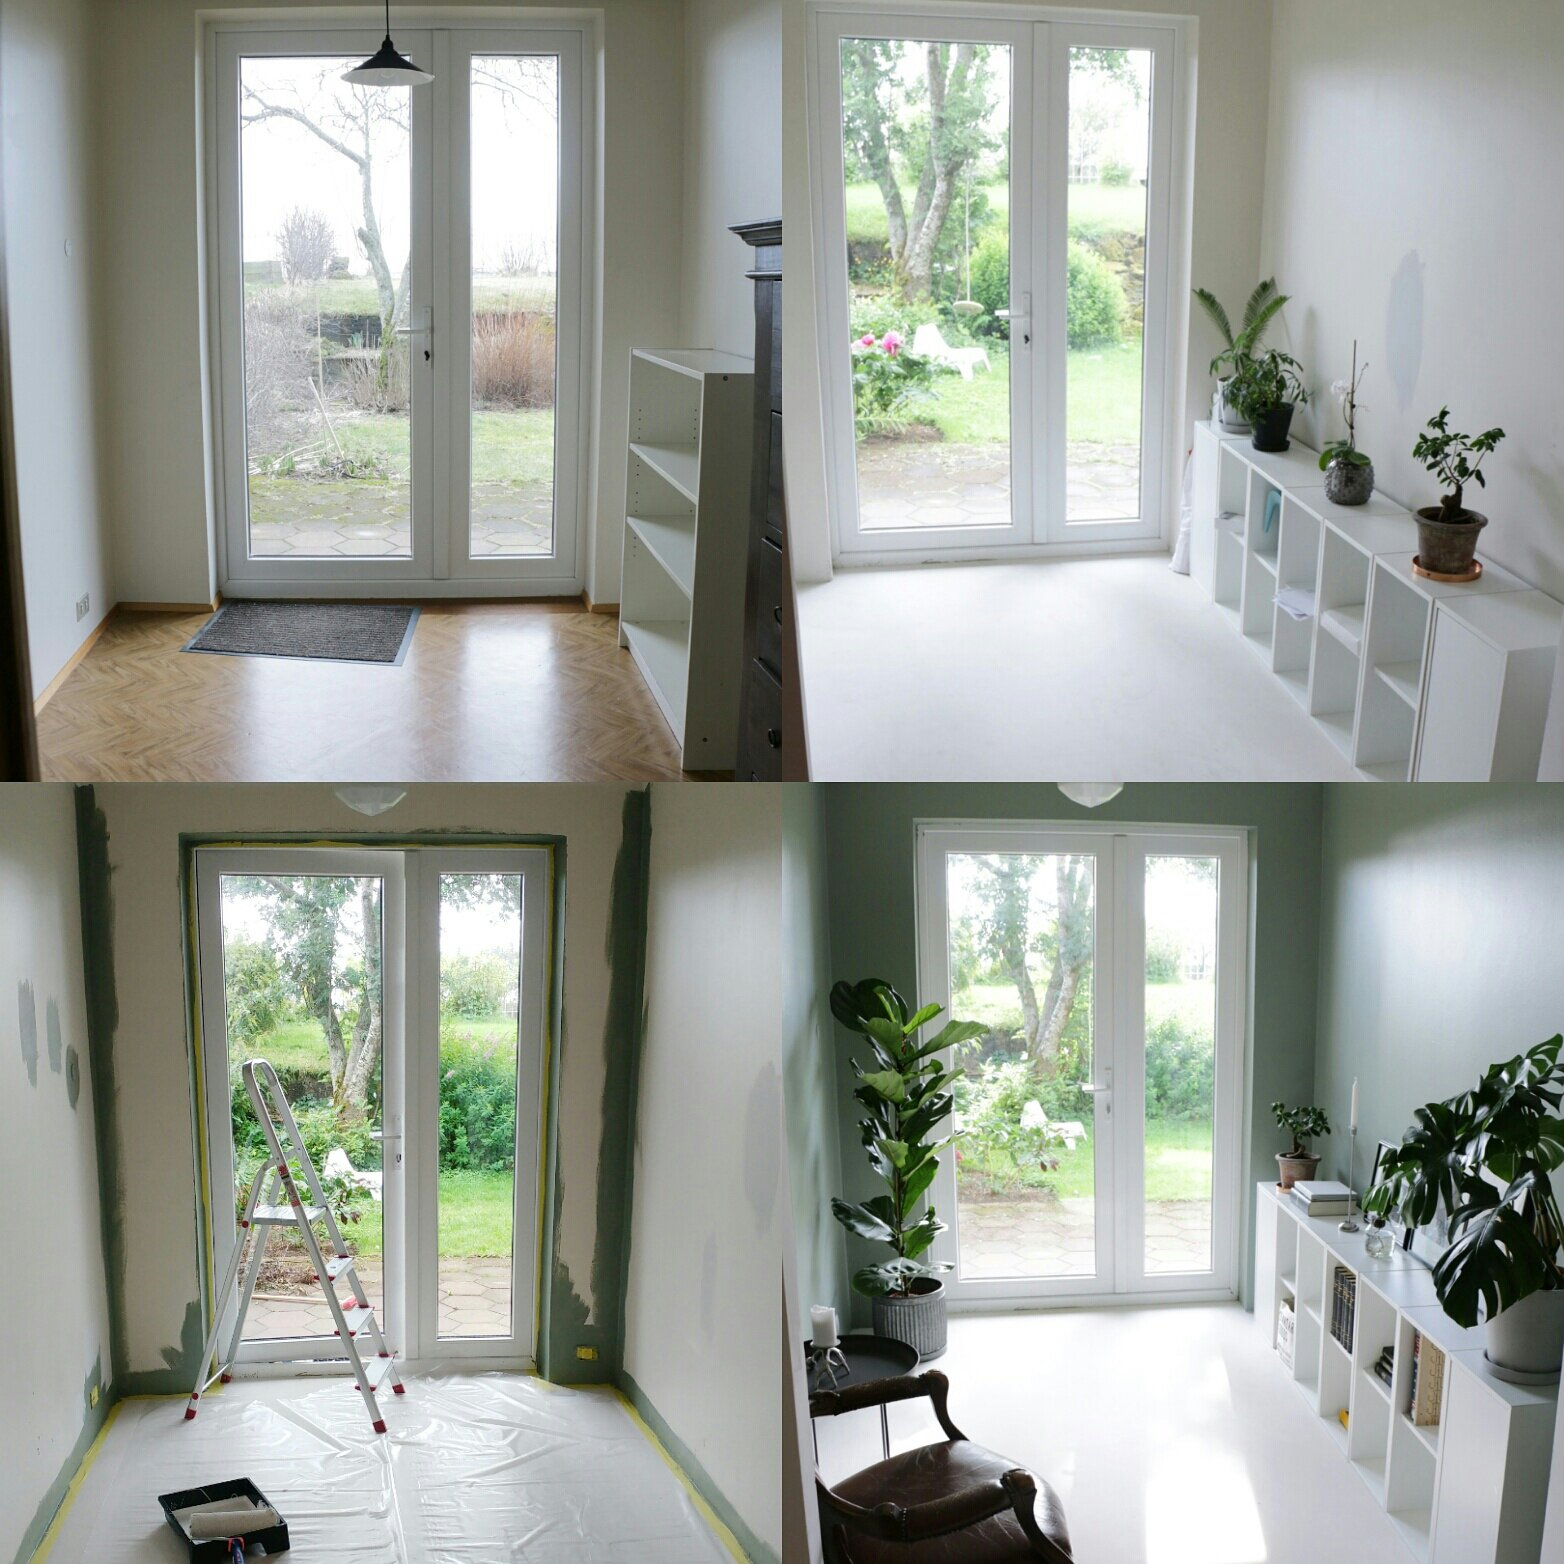 Garden room – Before/After